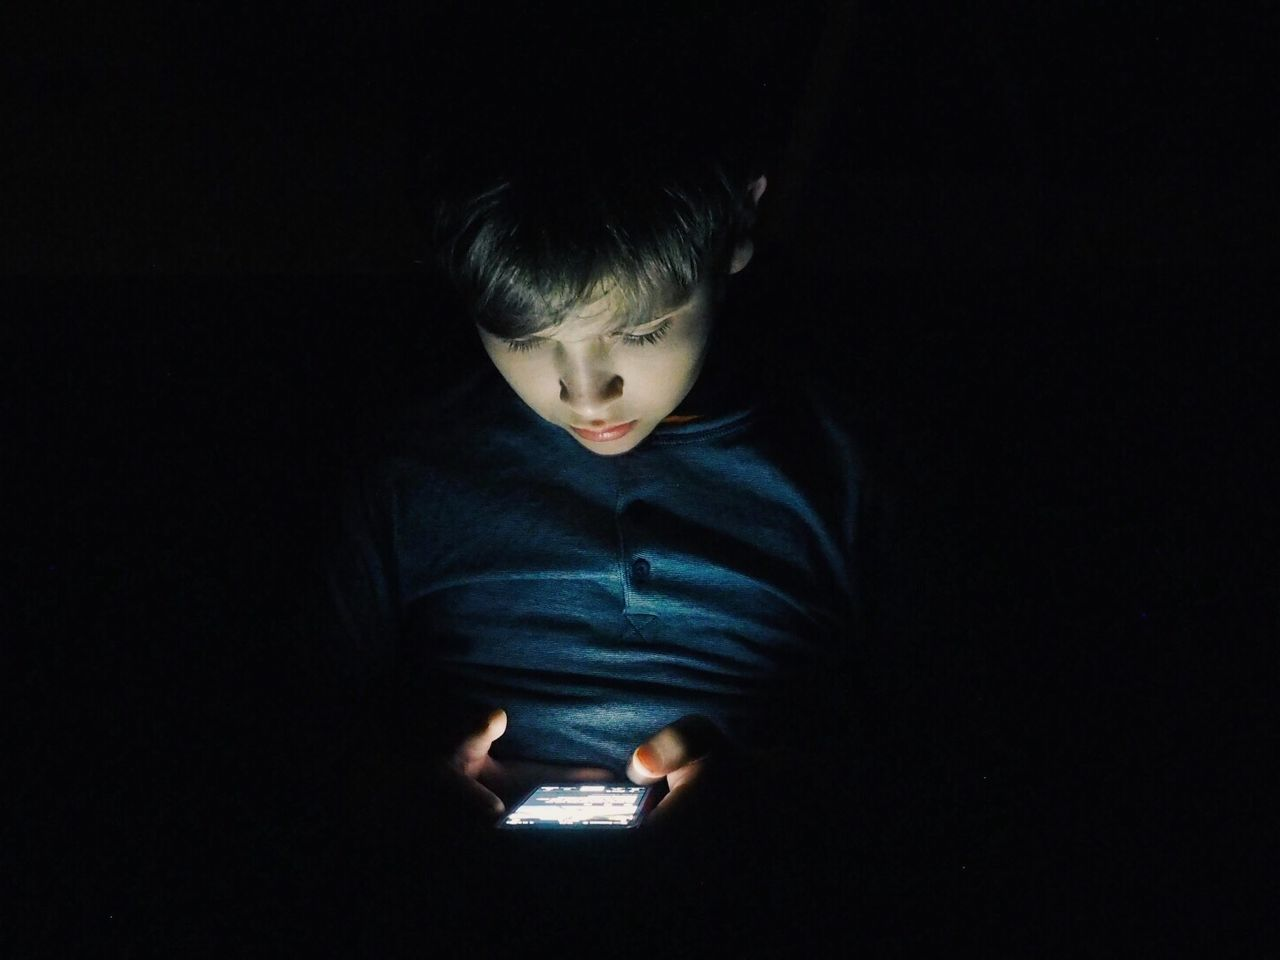 CLOSE-UP OF BOY IN ILLUMINATED DARKROOM